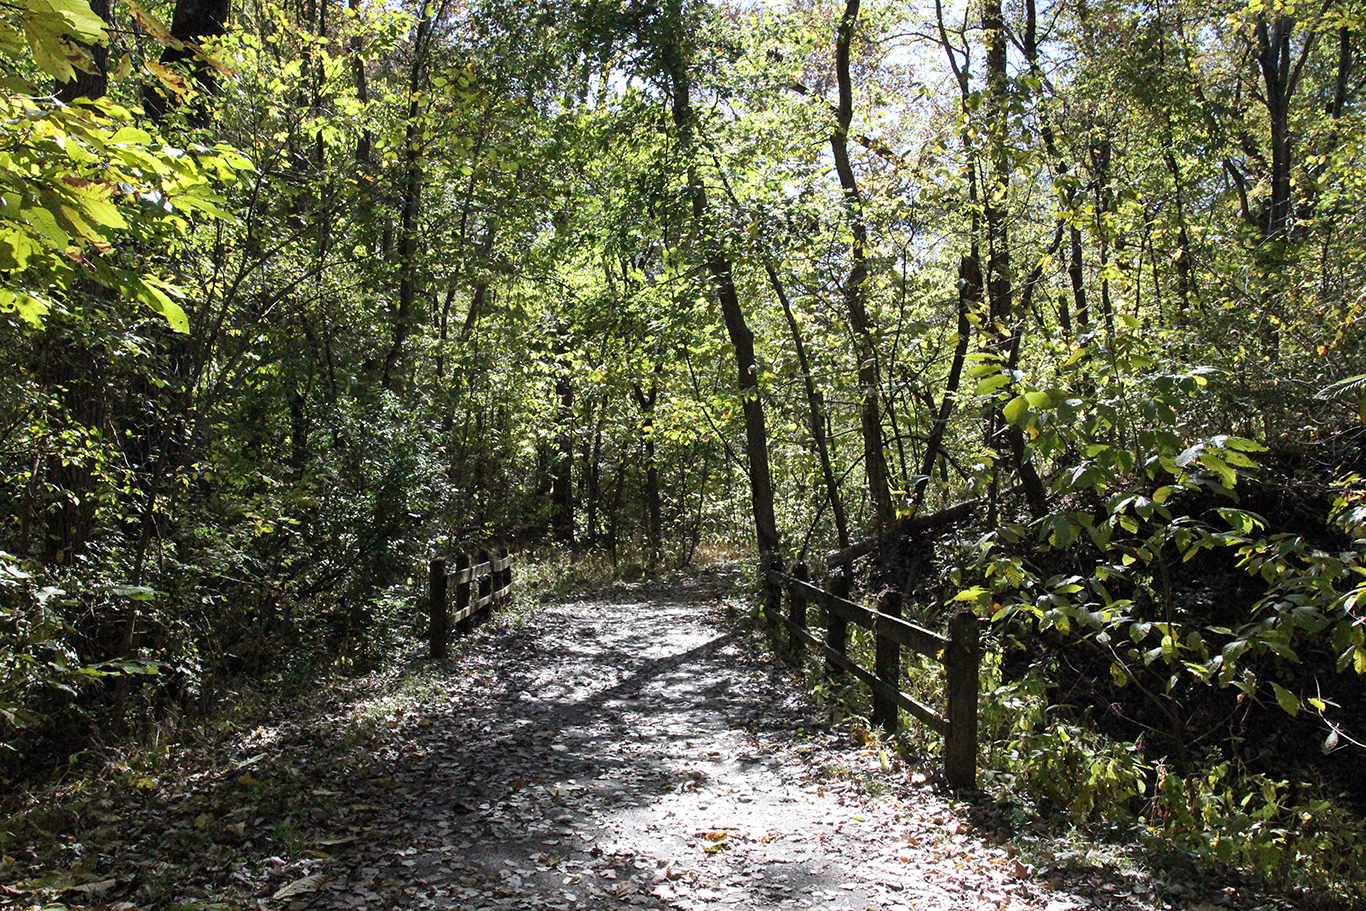 Hiking Trail at Weston Bend State Park, Missouri